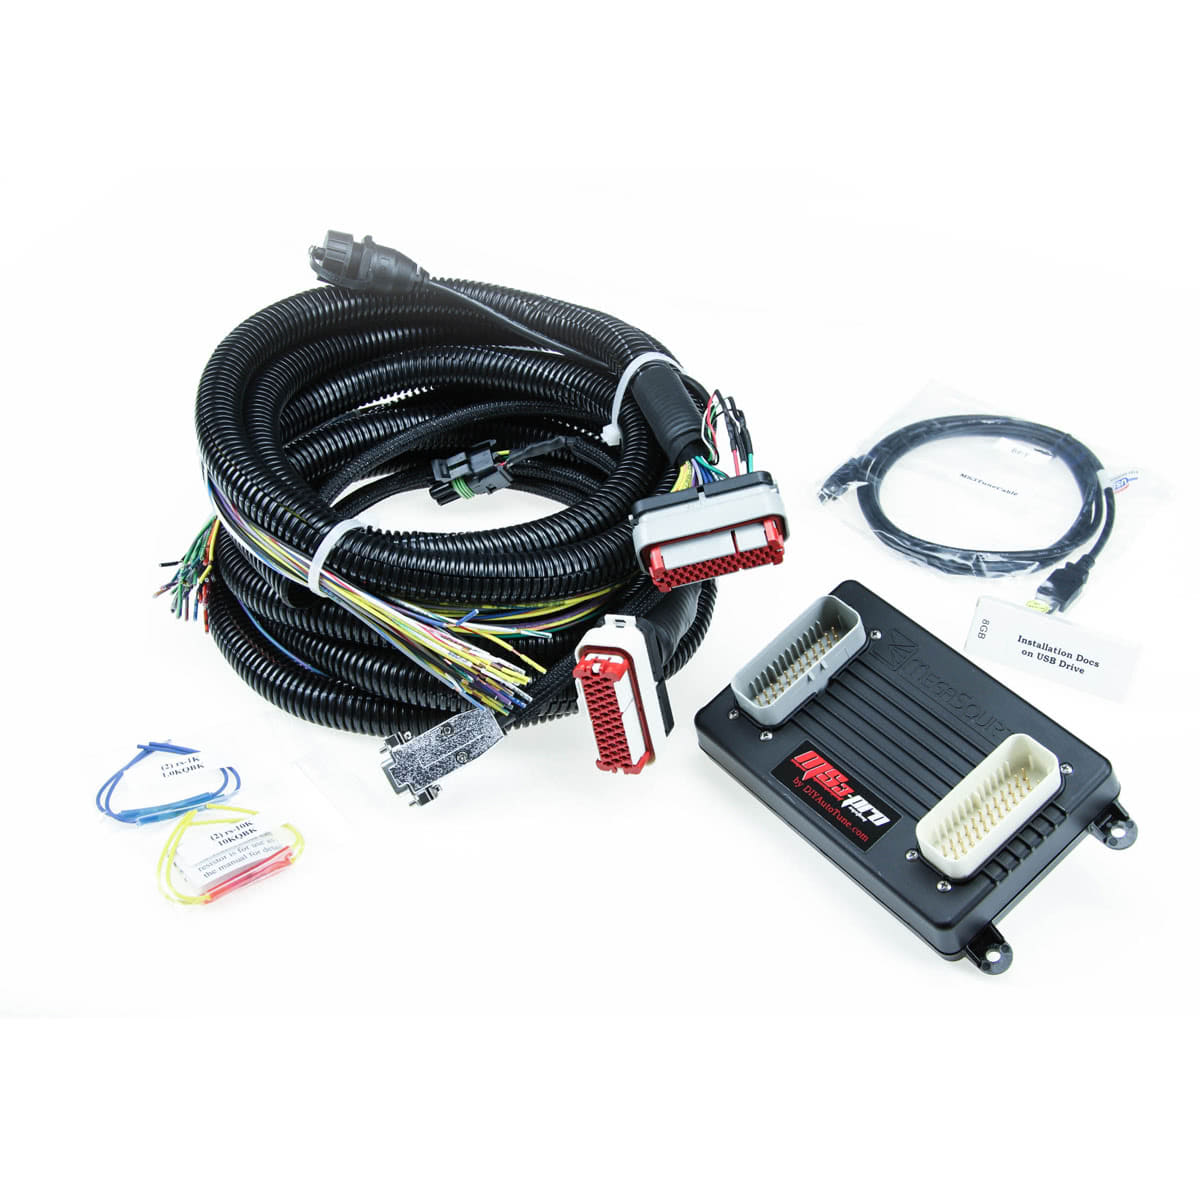 MS3Pro Pkg1_3 ms3pro evo standalone ecu with 8' wiring harness subaru standalone wiring harness at gsmportal.co